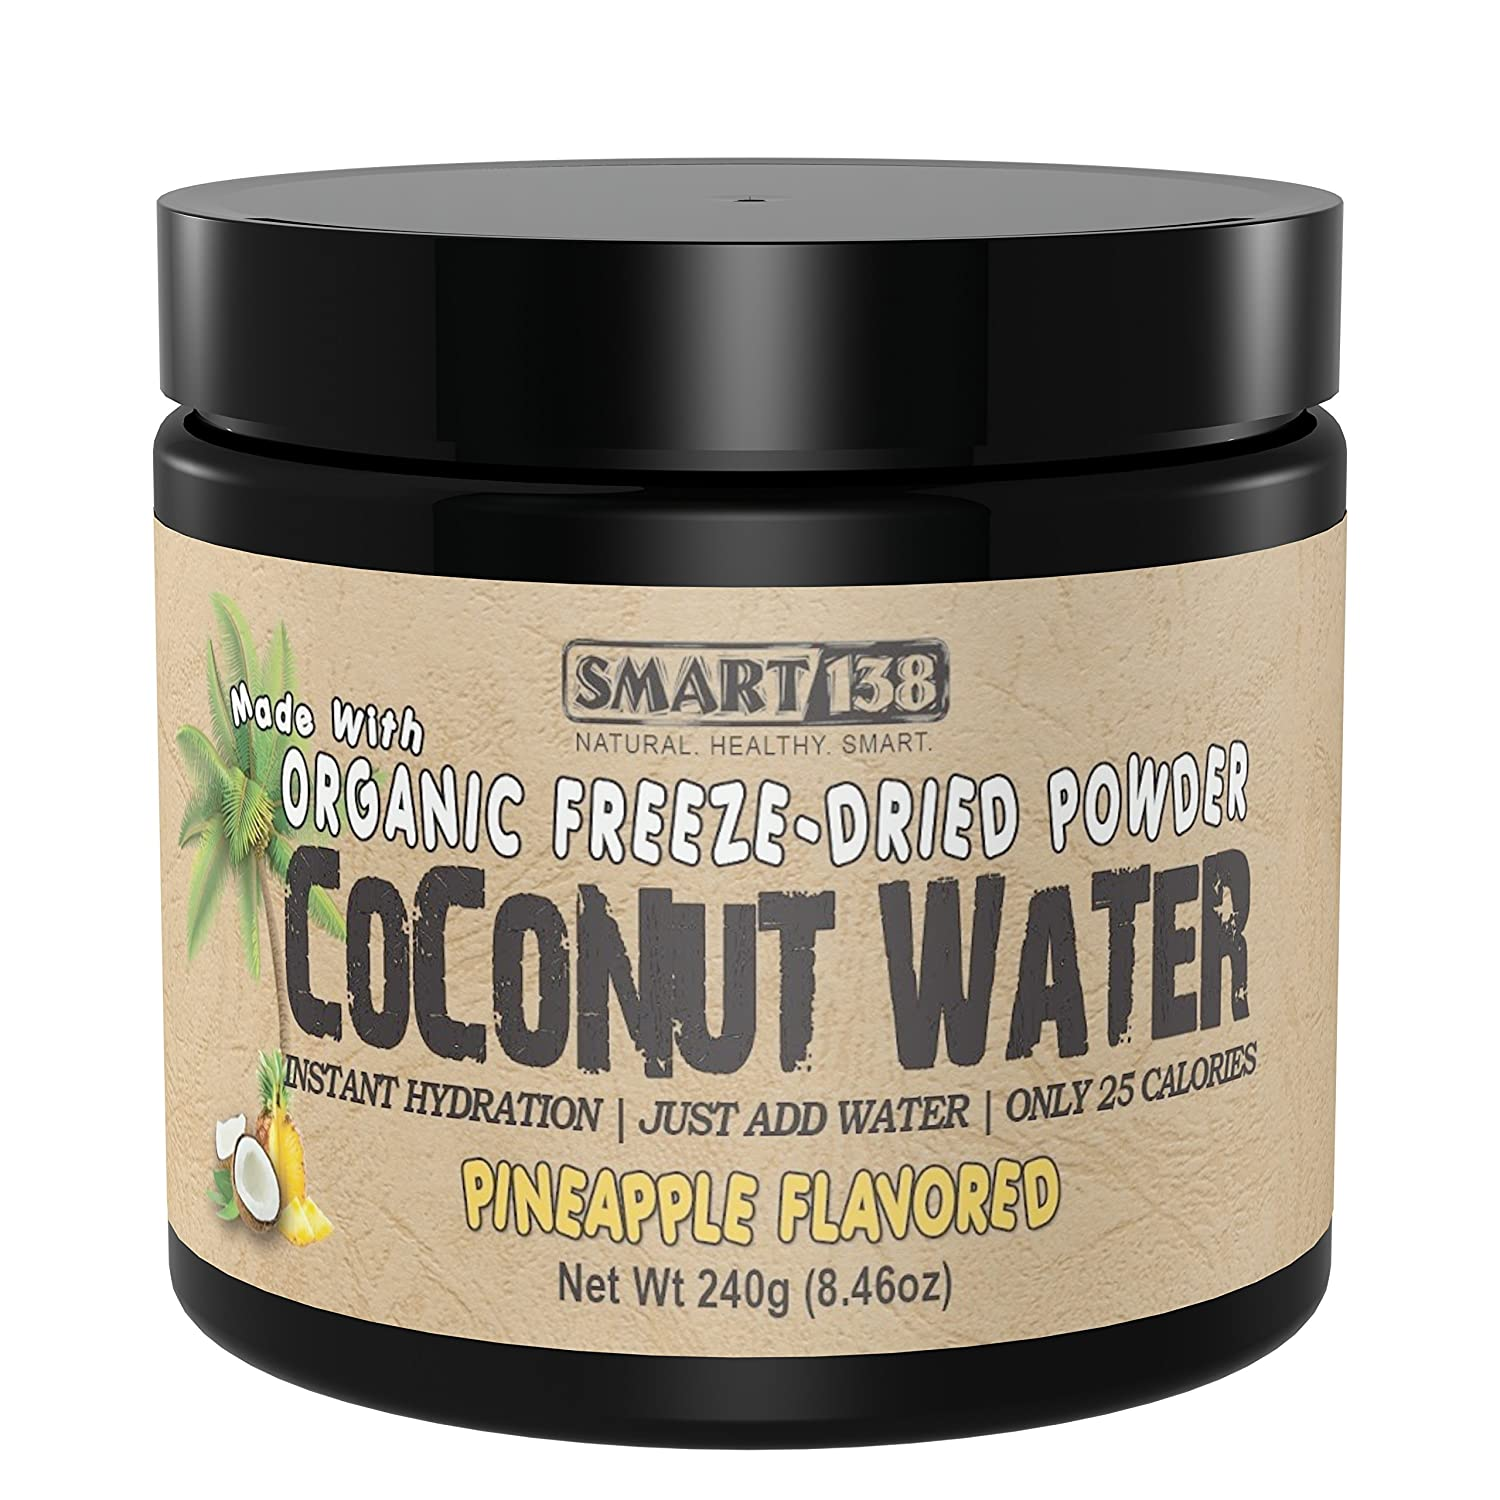 Organic Freeze-Dried Coconut Water Powder, Instant Hydration, Just Add  Water, Low Calorie